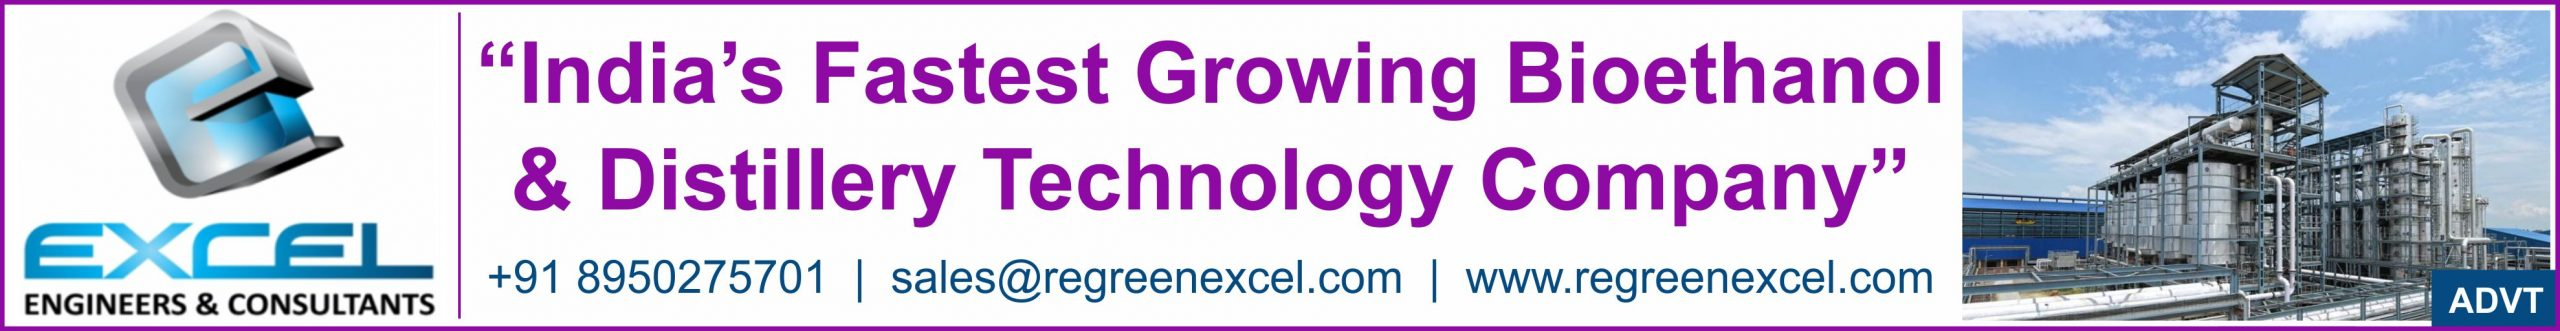 Excel ad banner 2 scaled 1